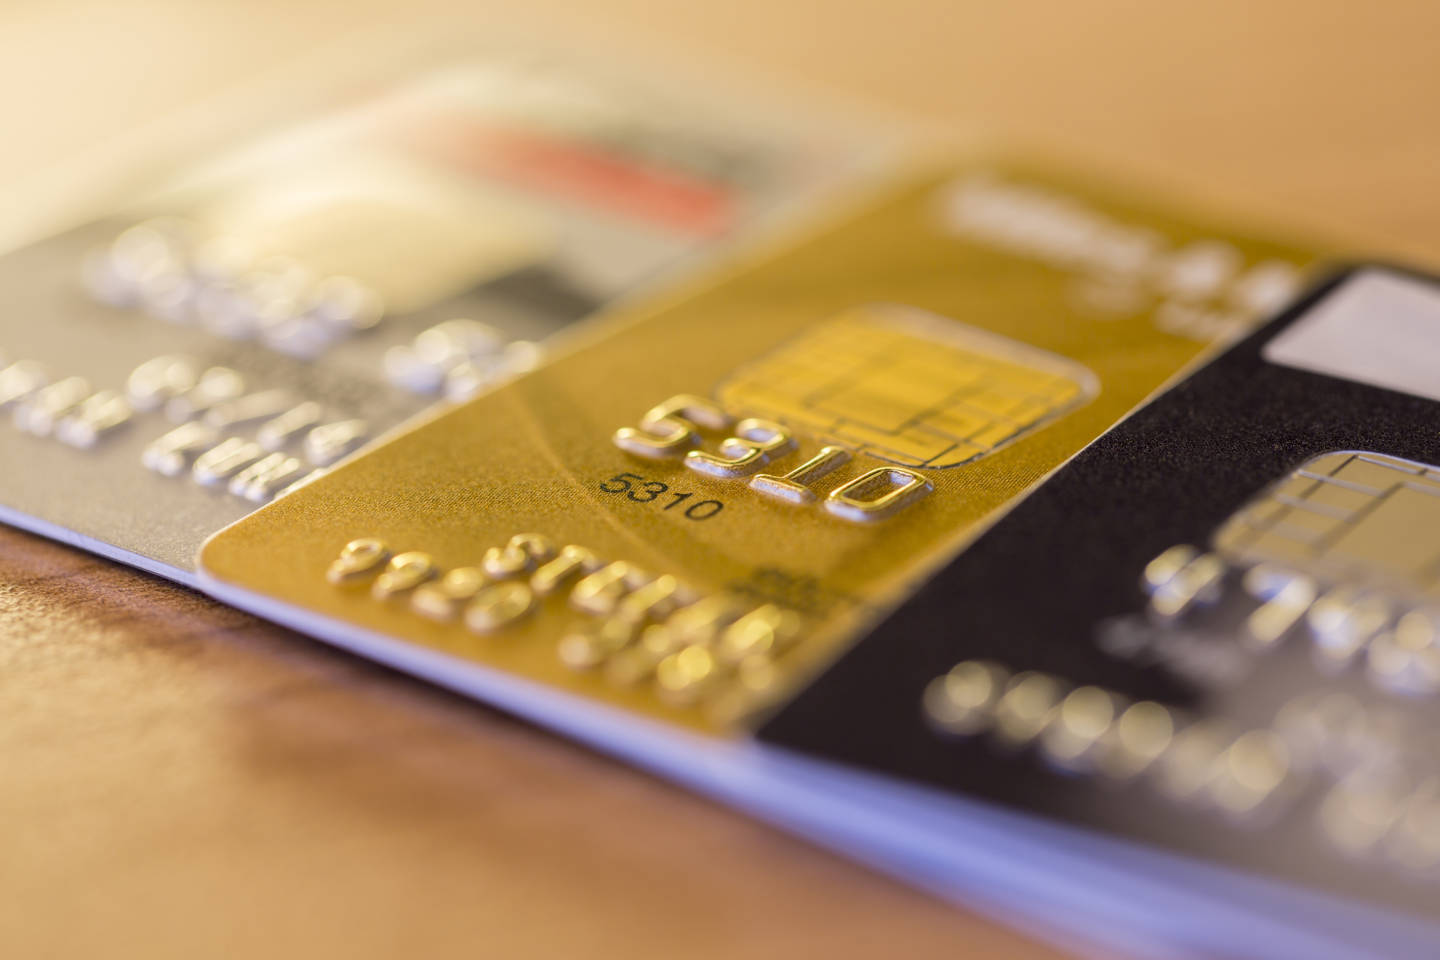 Best practices for managing small business credit cards the small business guide to credit cards colourmoves Gallery